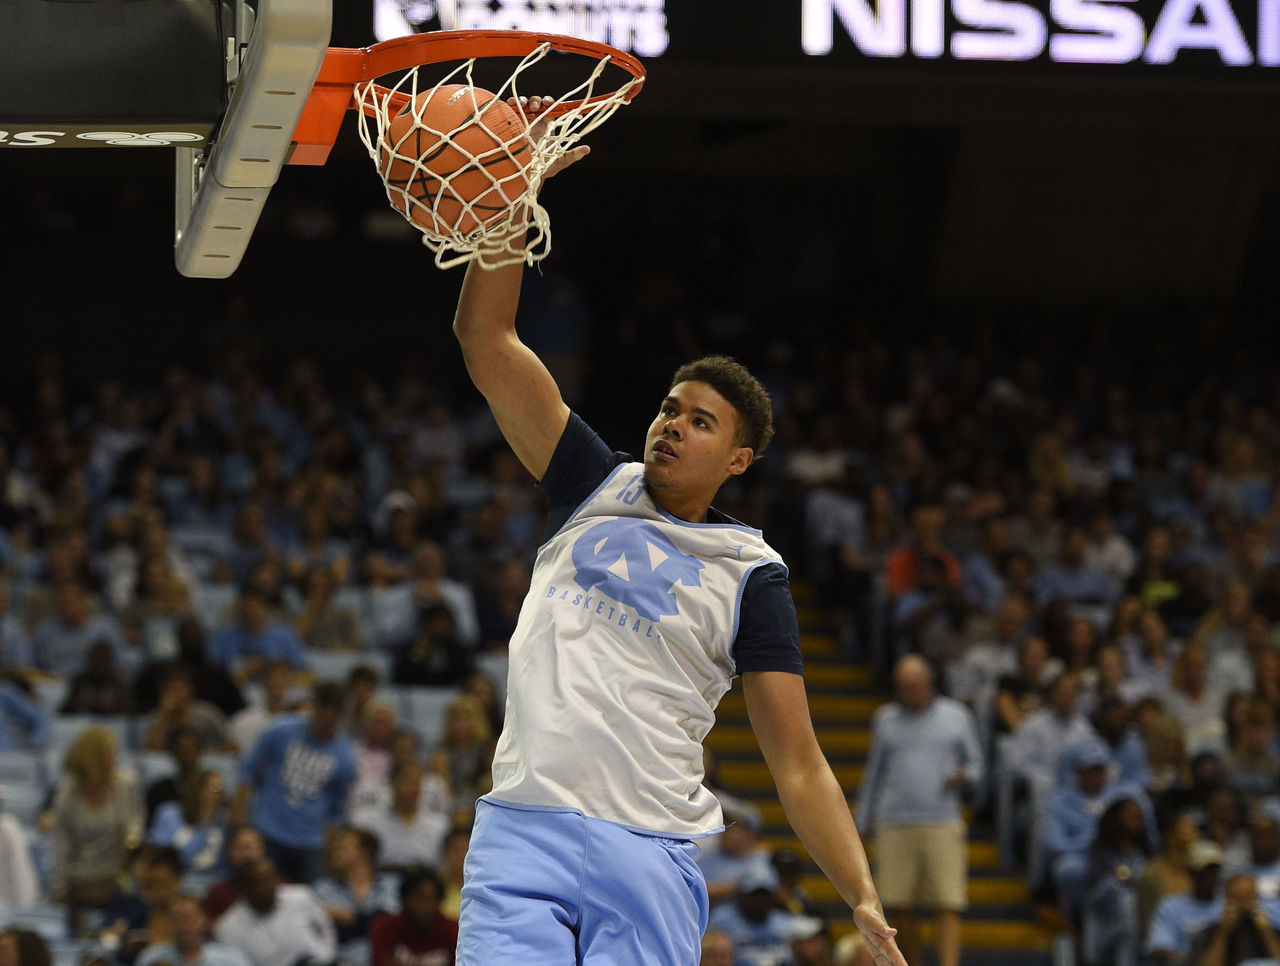 Cropped 2017 10 14t022918z 1135524058 nocid rtrmadp 3 ncaa basketball north carolina midnight madness